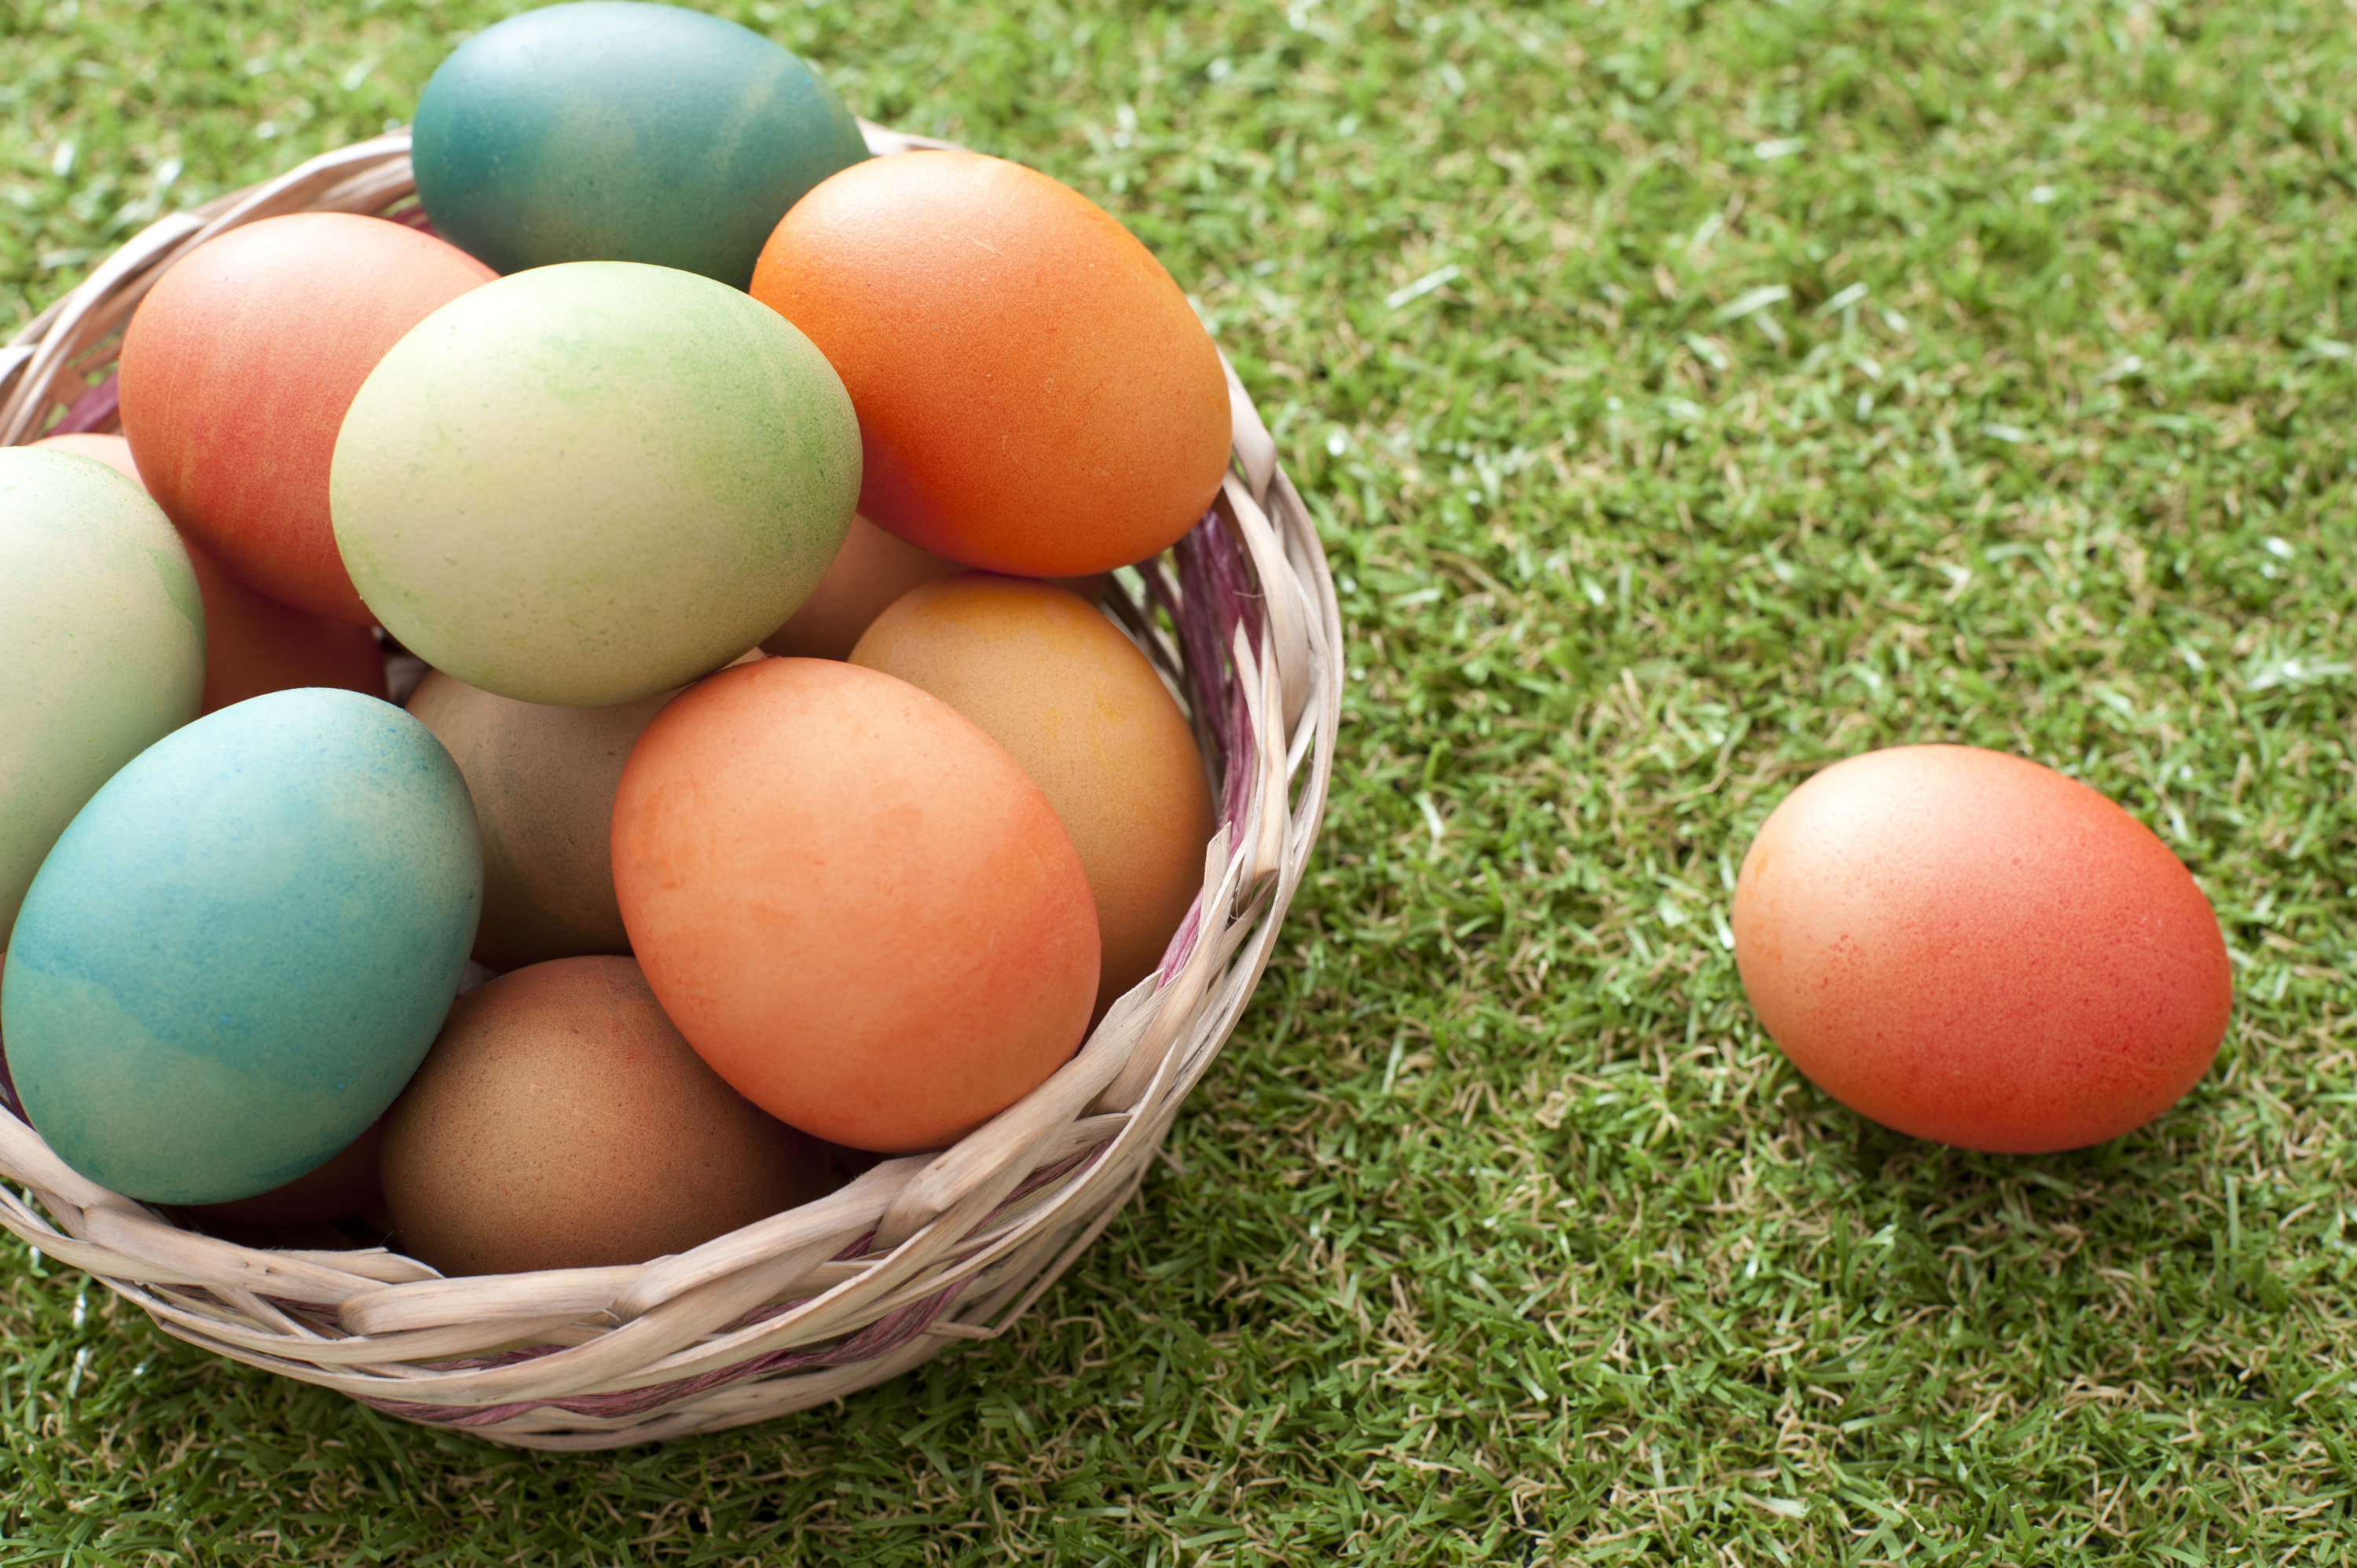 colourful_basket_of_eggs.jpg - Wicker basket filled with colorful dyed boiled Easter eggs on neat green grass with a single egg alongside and copy space